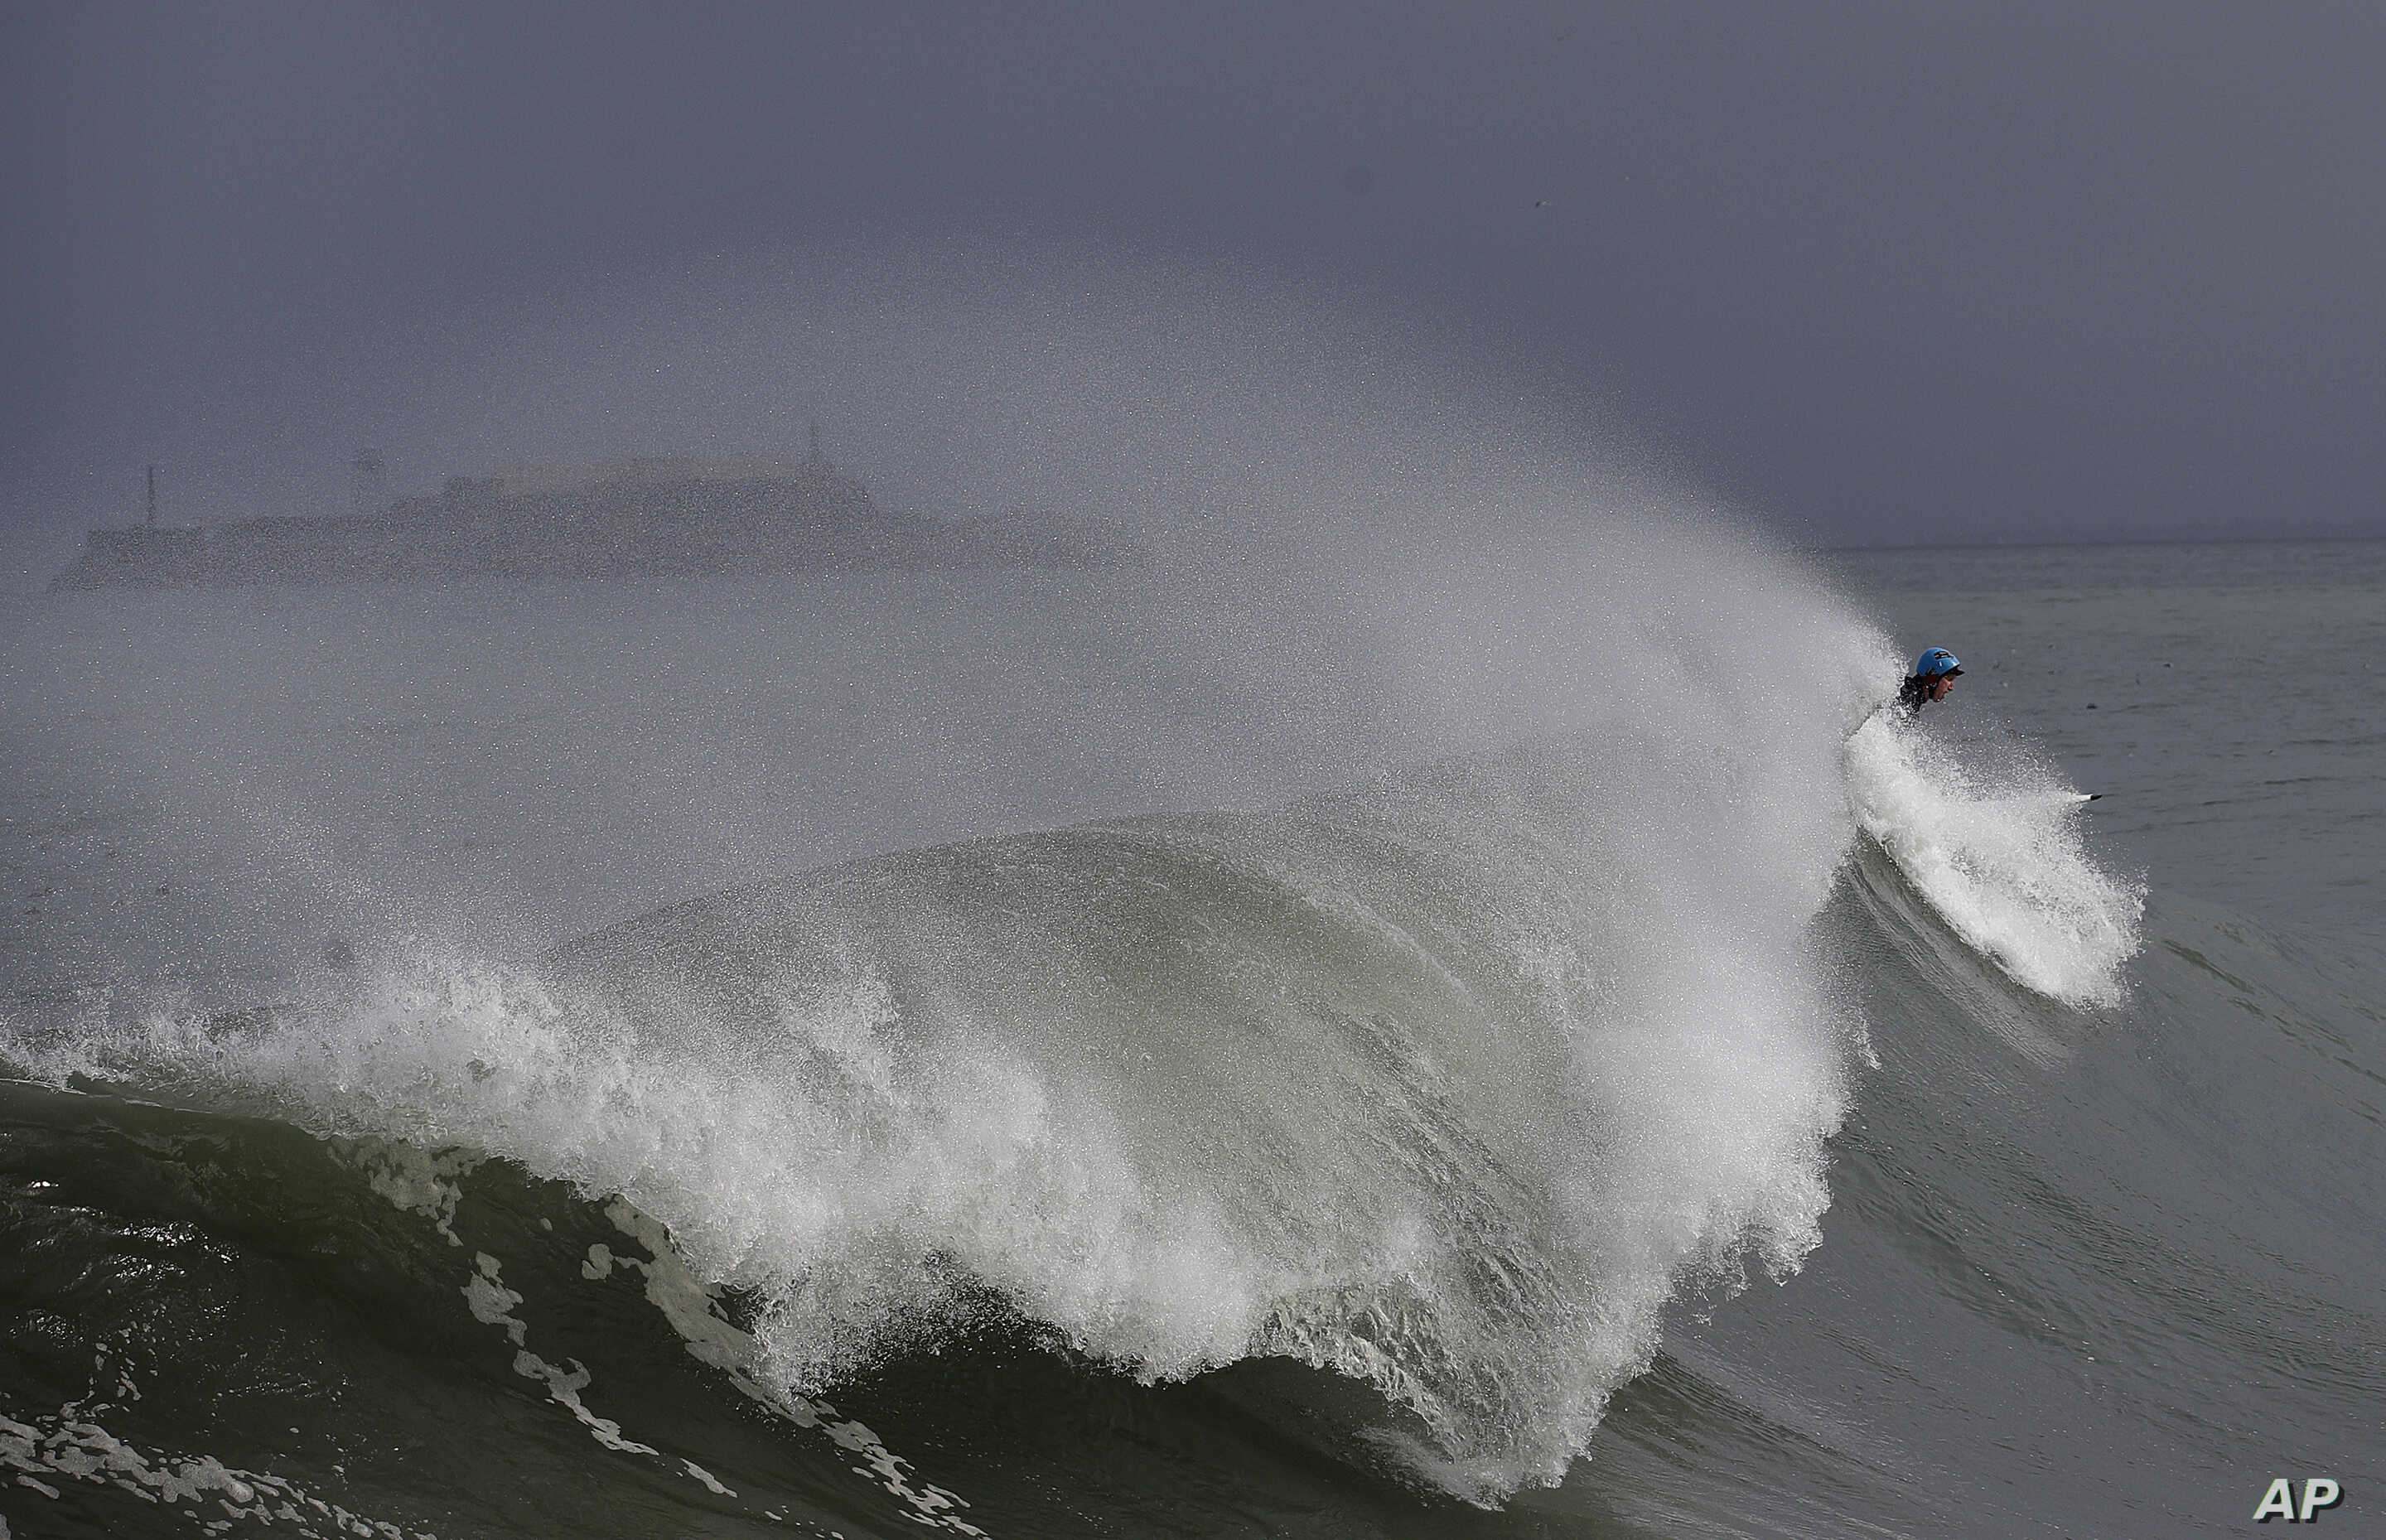 A  surfer rides a wave near Fort Point in front of Alcatraz Island in San Francisco, , Nov. 29, 2018. A storm moving into California brought rain that may bring snow and cause travel problems in the Sierra Nevada mountains.